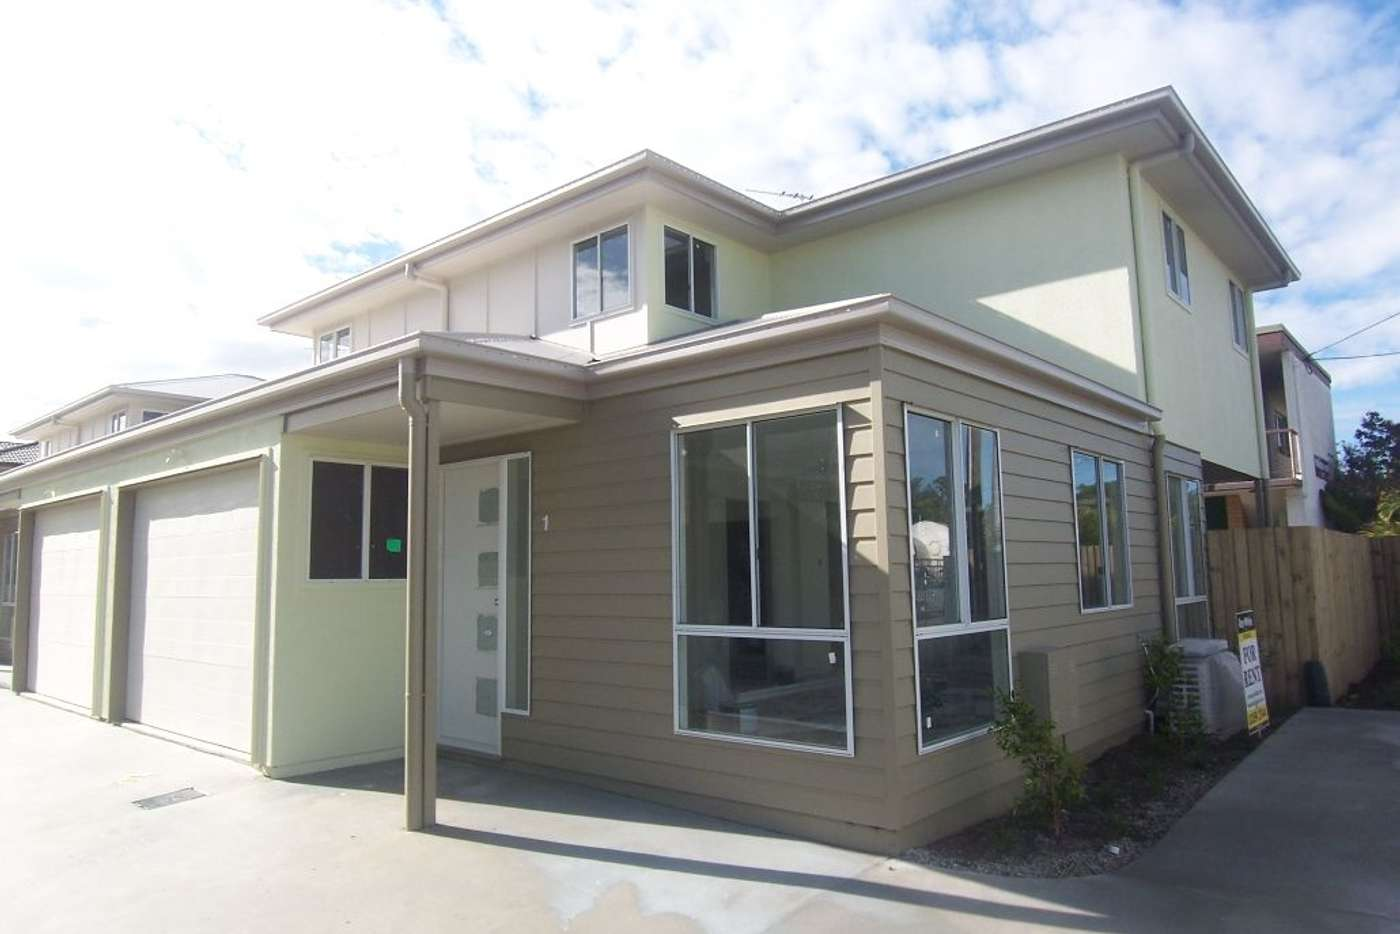 Main view of Homely townhouse listing, 5/10 Church Road, Zillmere QLD 4034